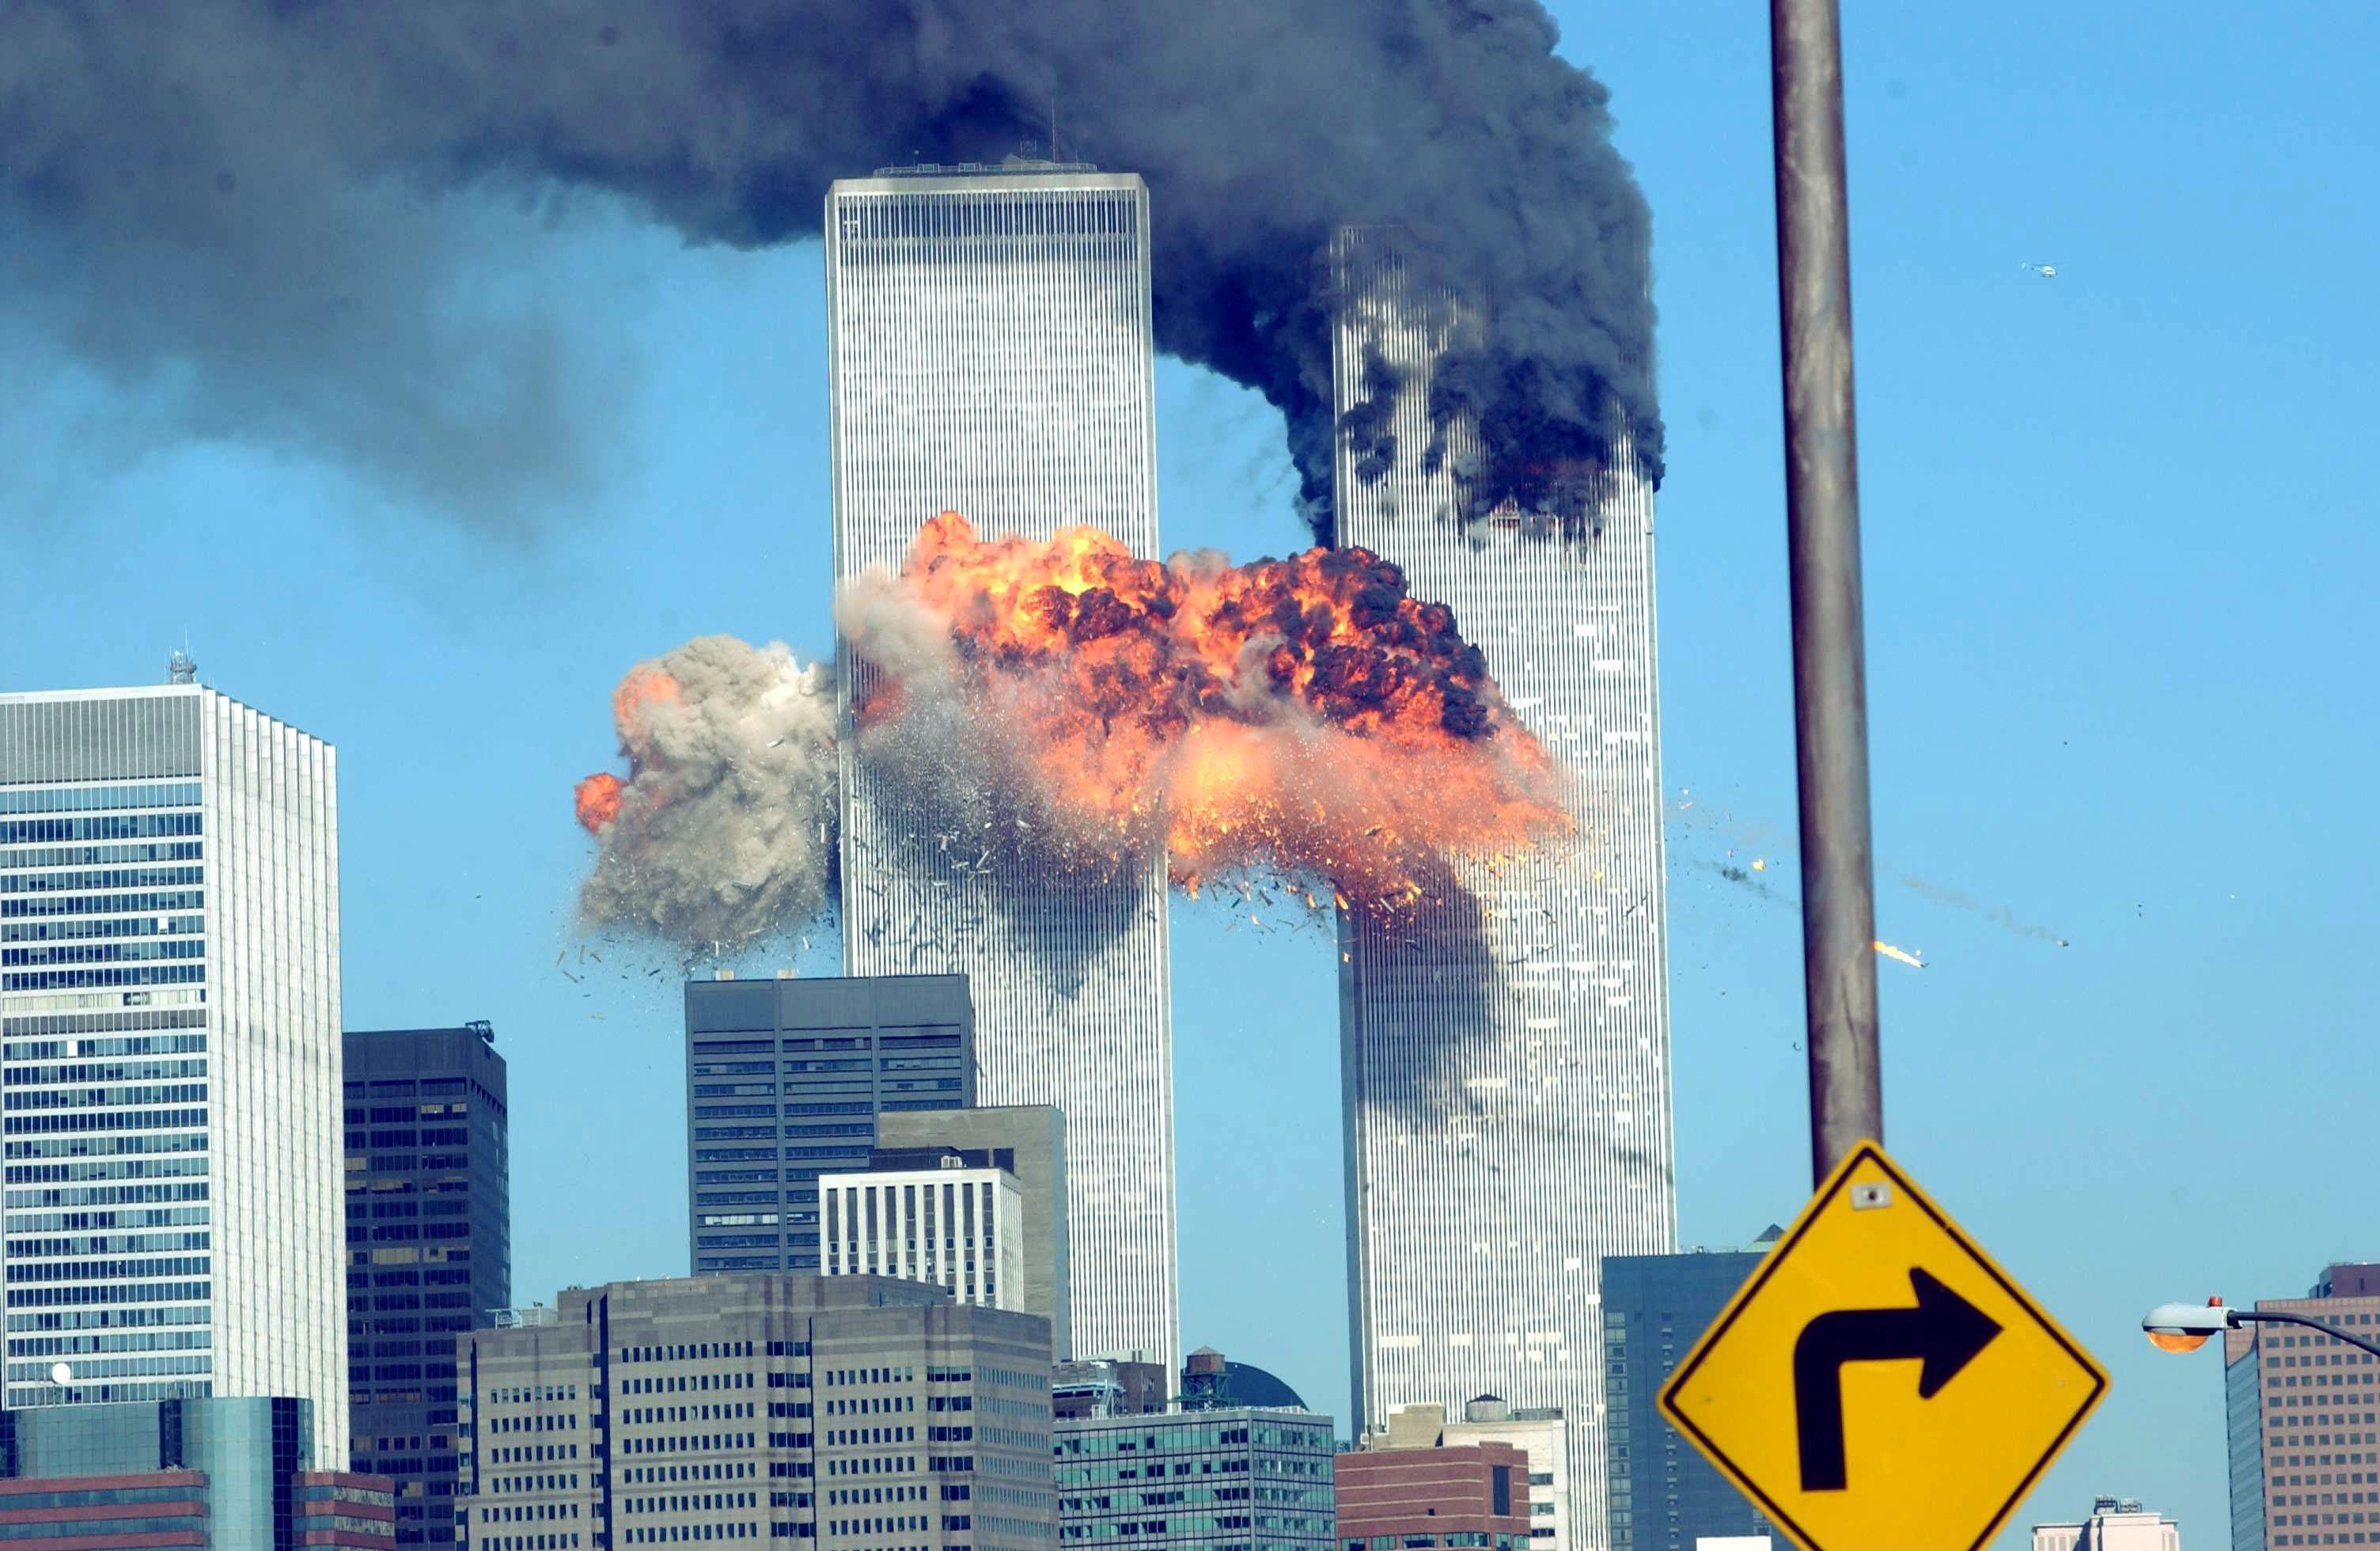 9/11 Photos: On Attacks' 15th Anniversary, 15 Iconic ... 9 Photos